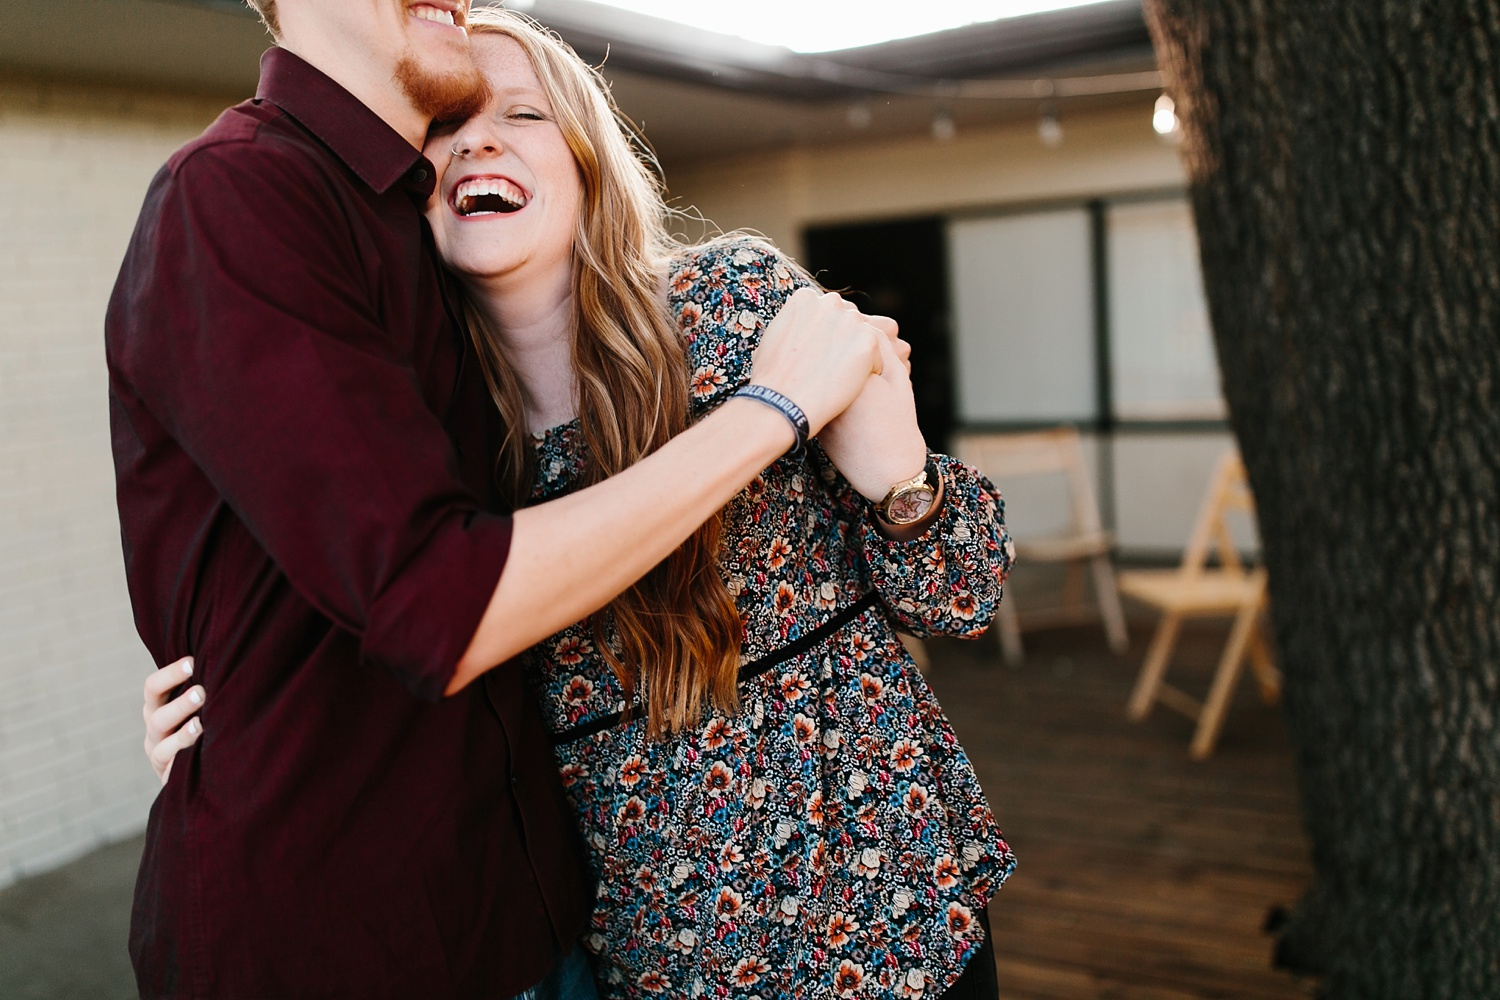 Kayla + Alex _ a joyful and loving engagement shoot in Waco, Texas by North Texas Wedding Photographer Rachel Meagan Photography _14